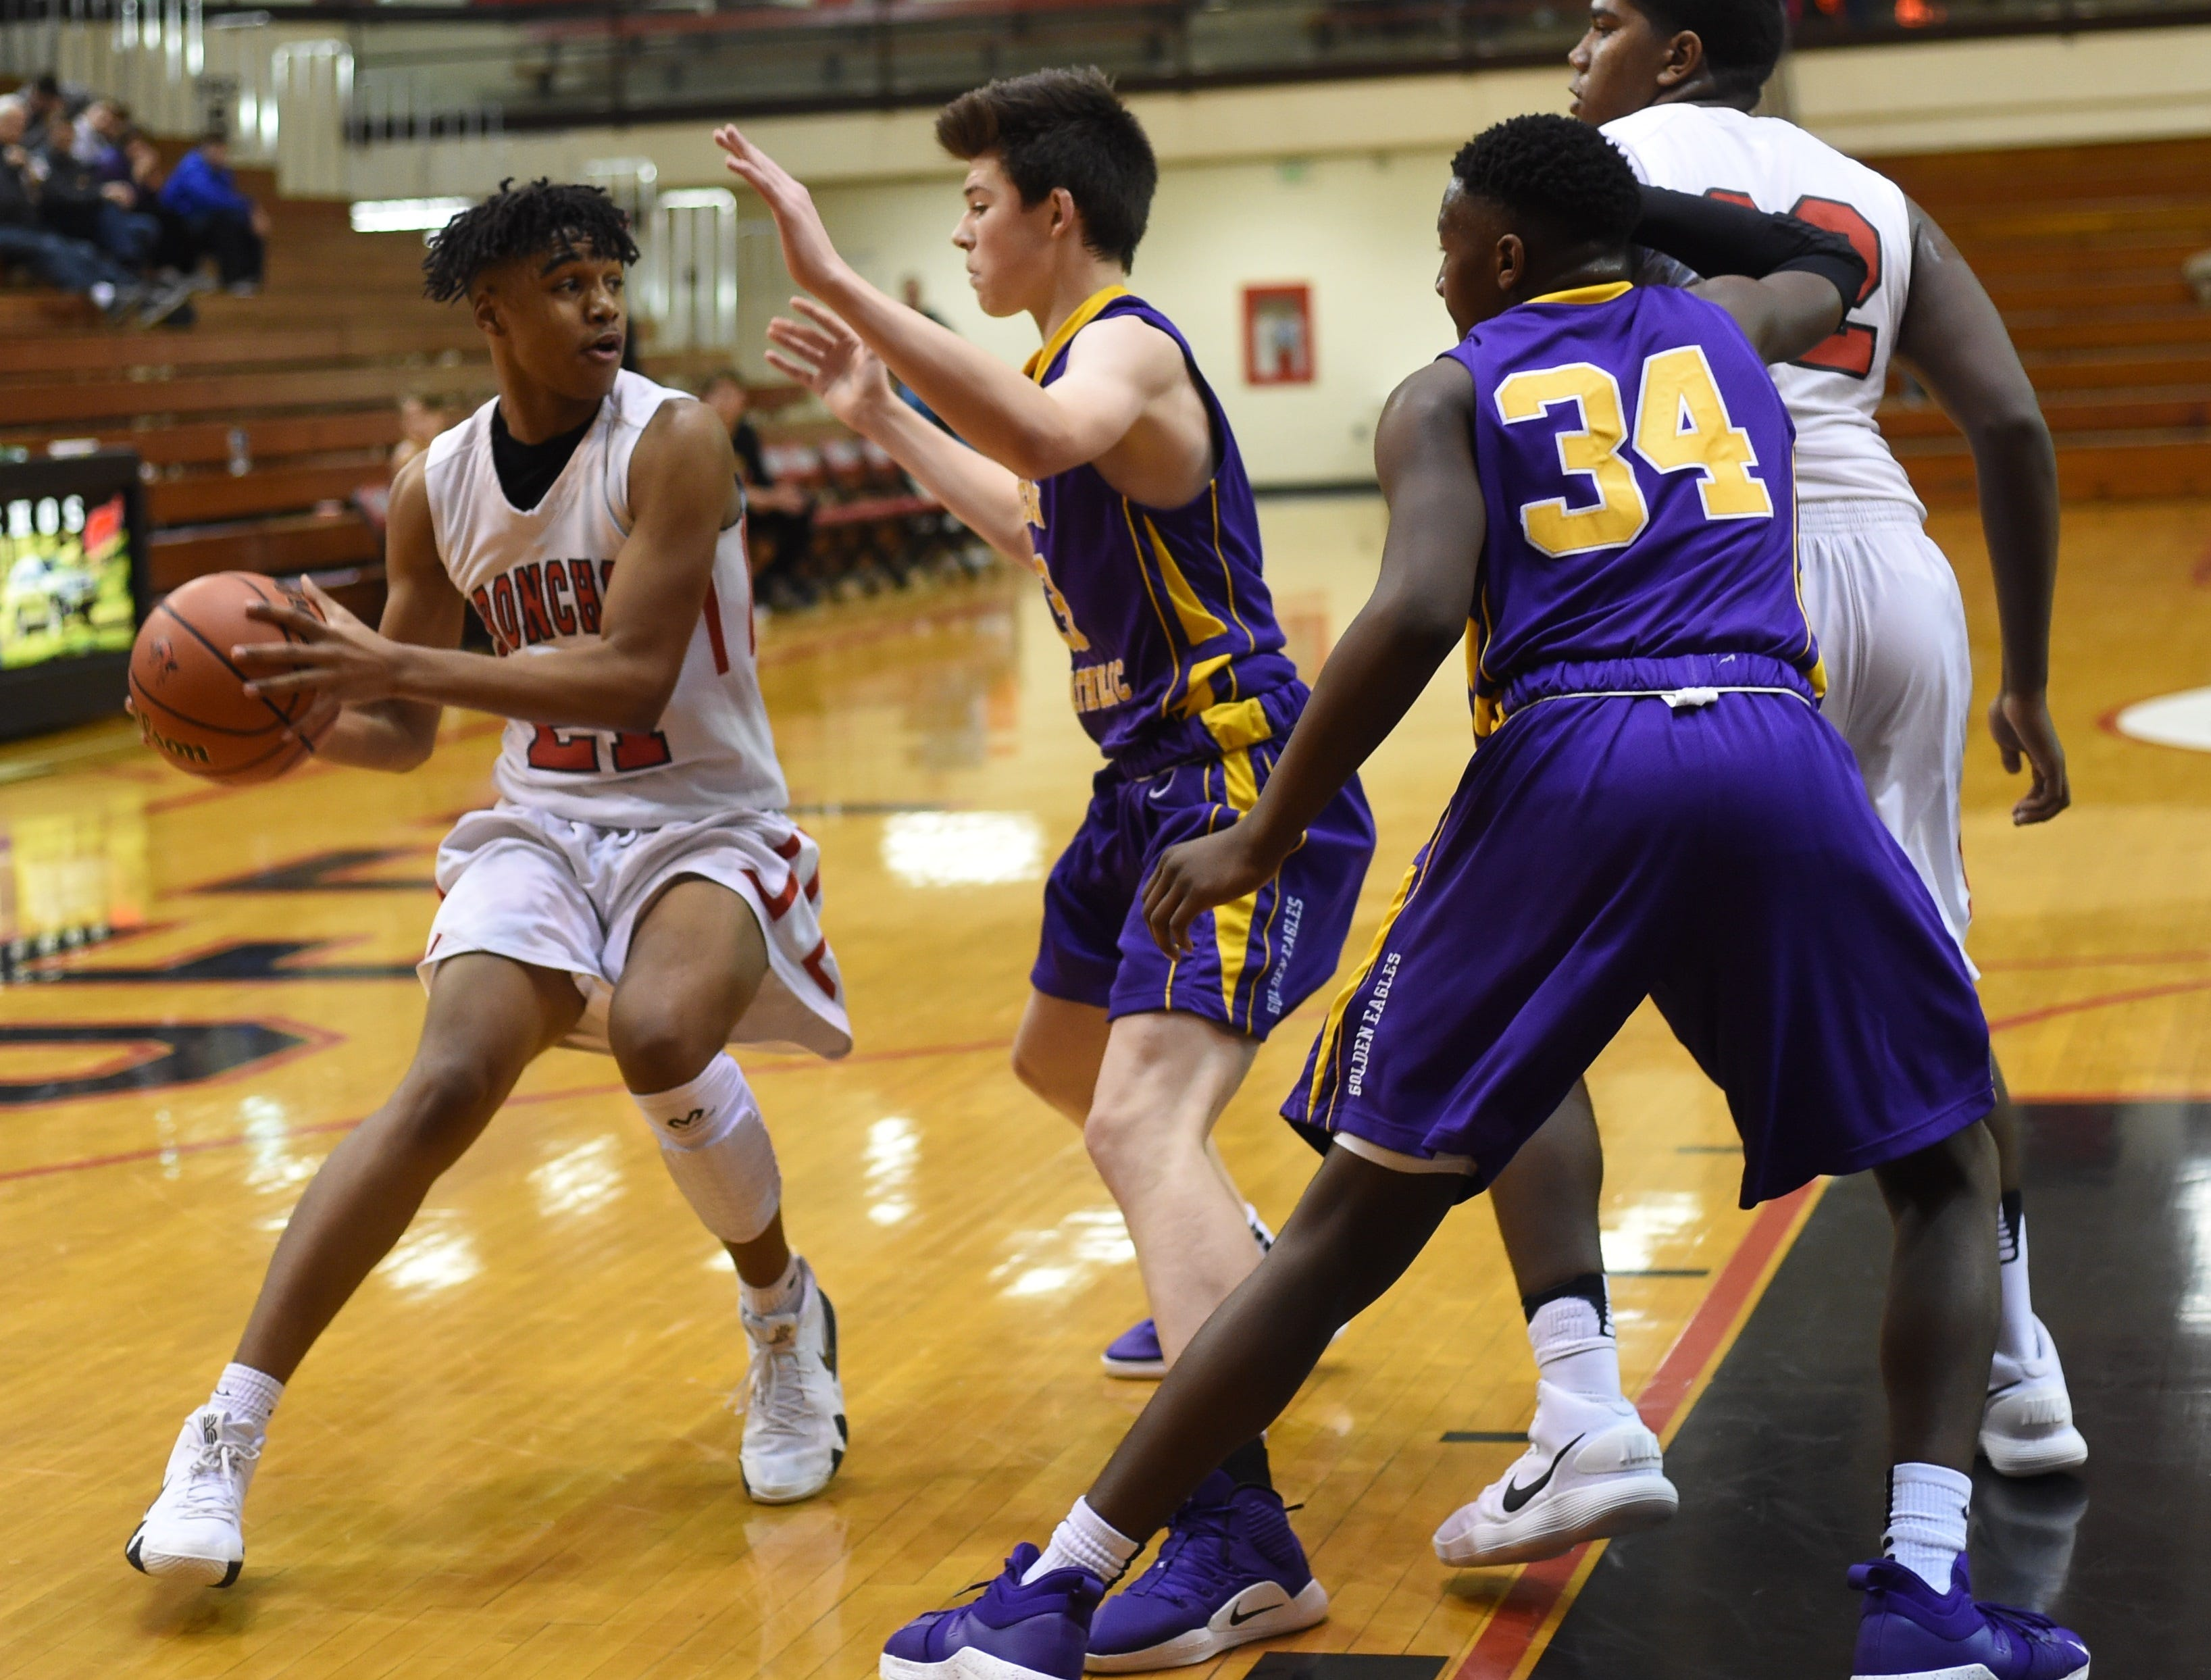 Scenes from Saturday night as the Bronchos battled the Golden Eagles of Guerin Catholic.